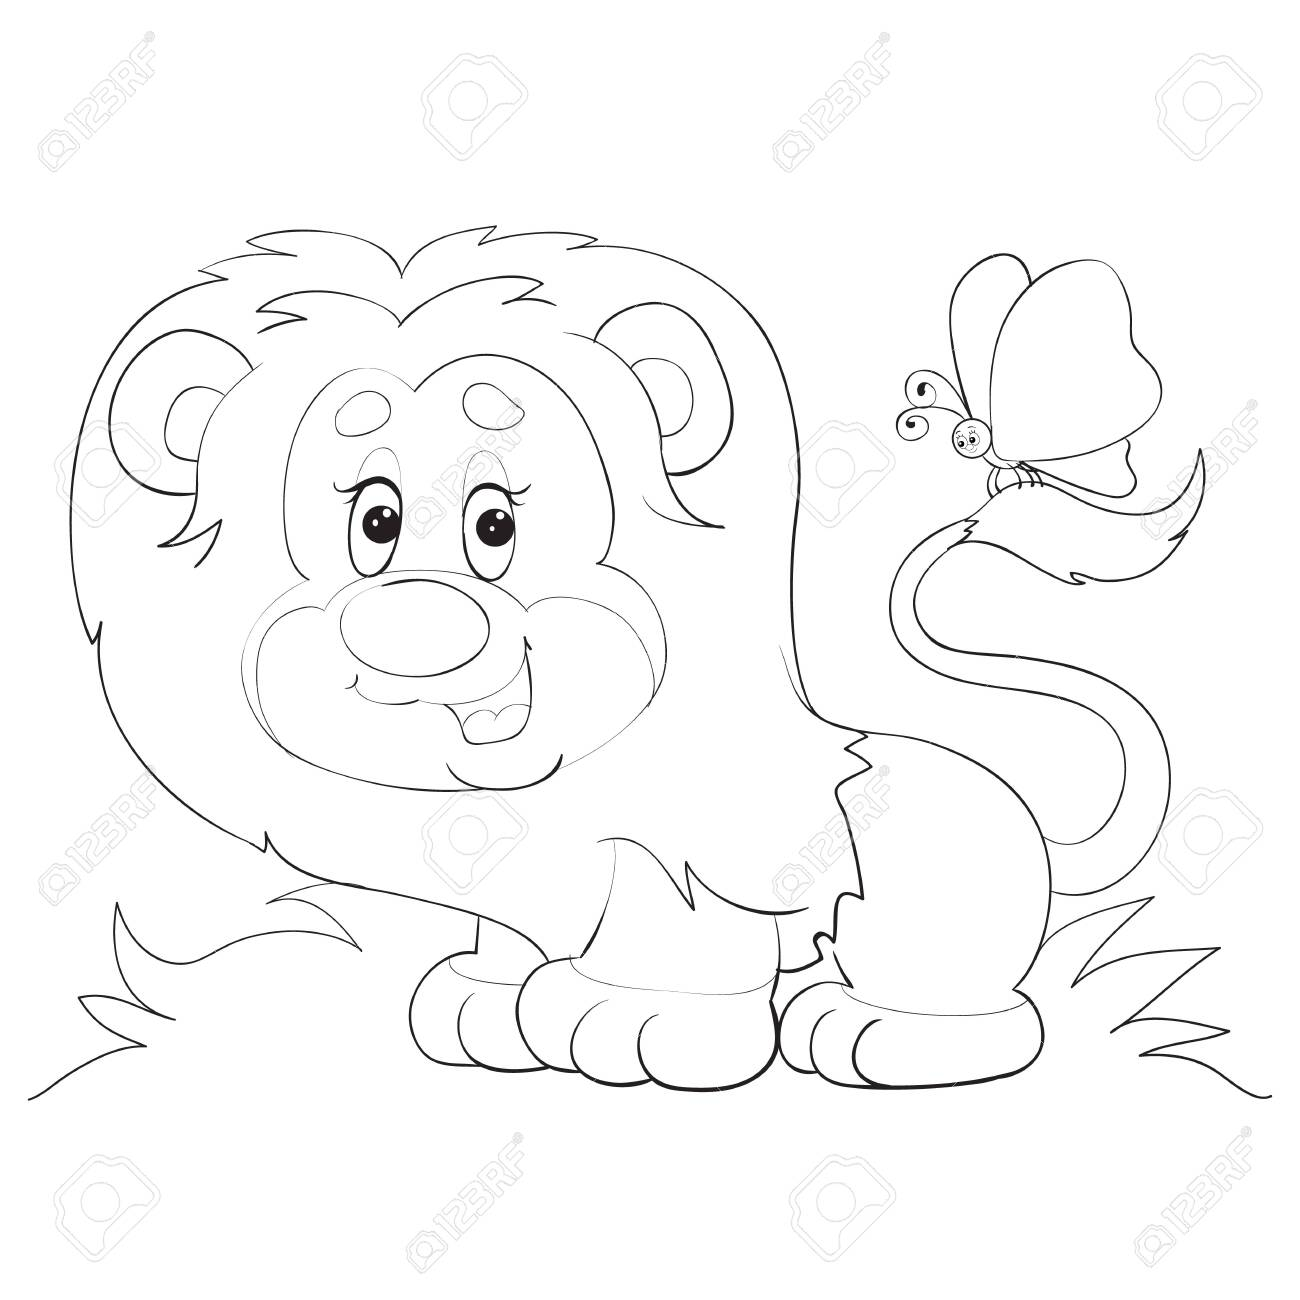 Cartoon Style Little Lion Cub With A Butterfly On Its Tail Drawn Royalty Free Cliparts Vectors And Stock Illustration Image 141989822 Audubon zoo's two lion cubs explore outside in their habitat. cartoon style little lion cub with a butterfly on its tail drawn